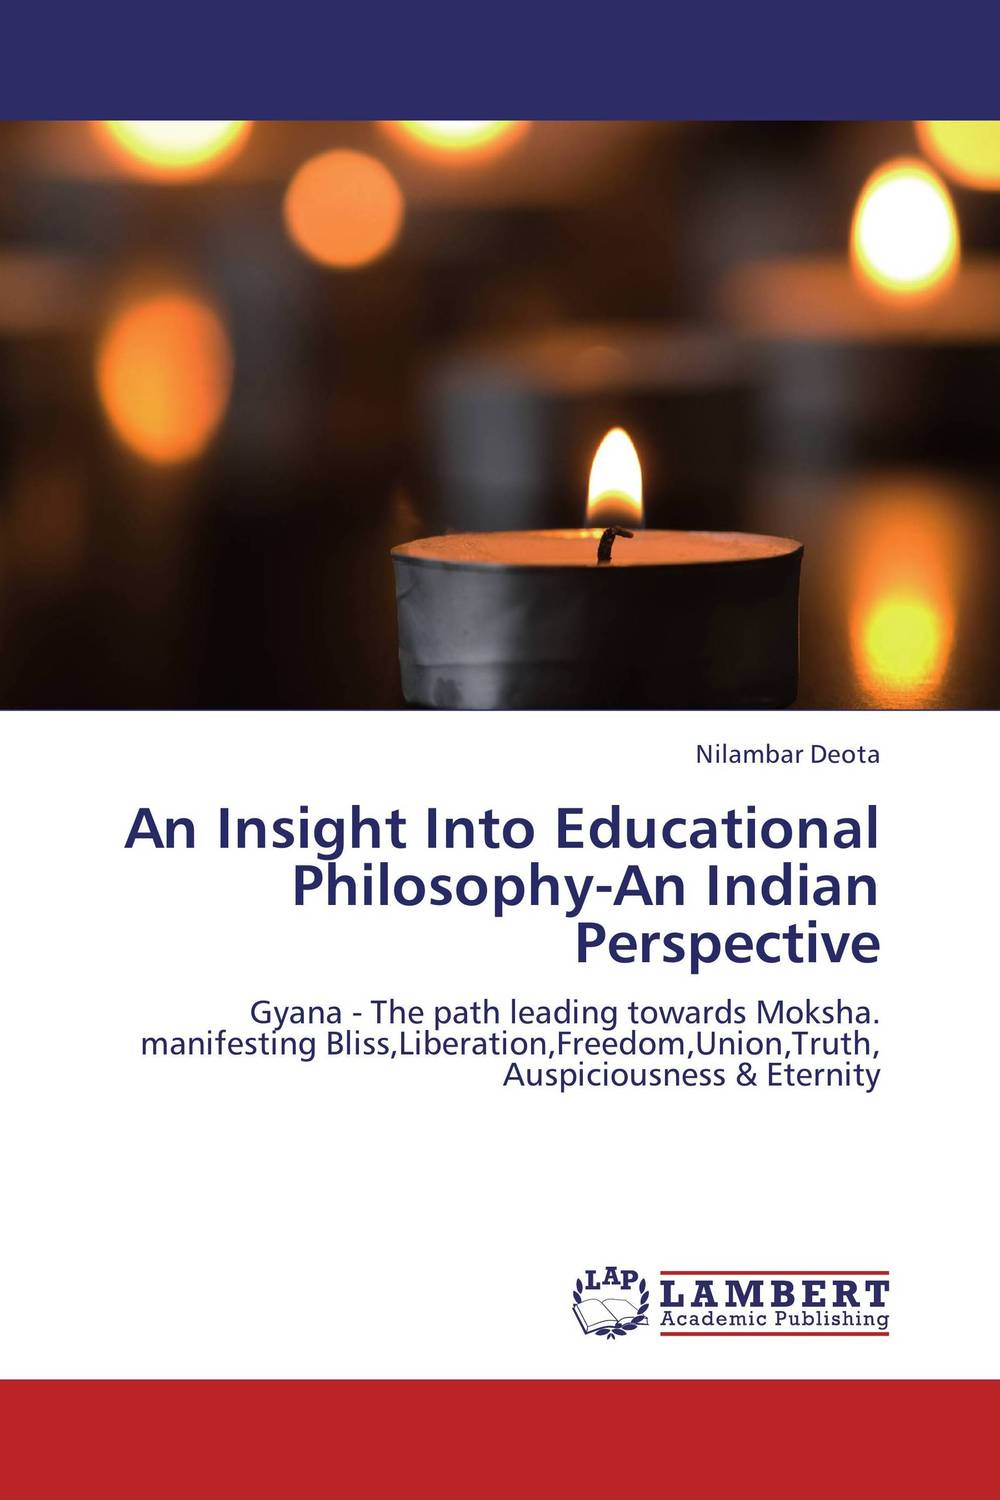 An Insight Into Educational Philosophy-An Indian Perspective